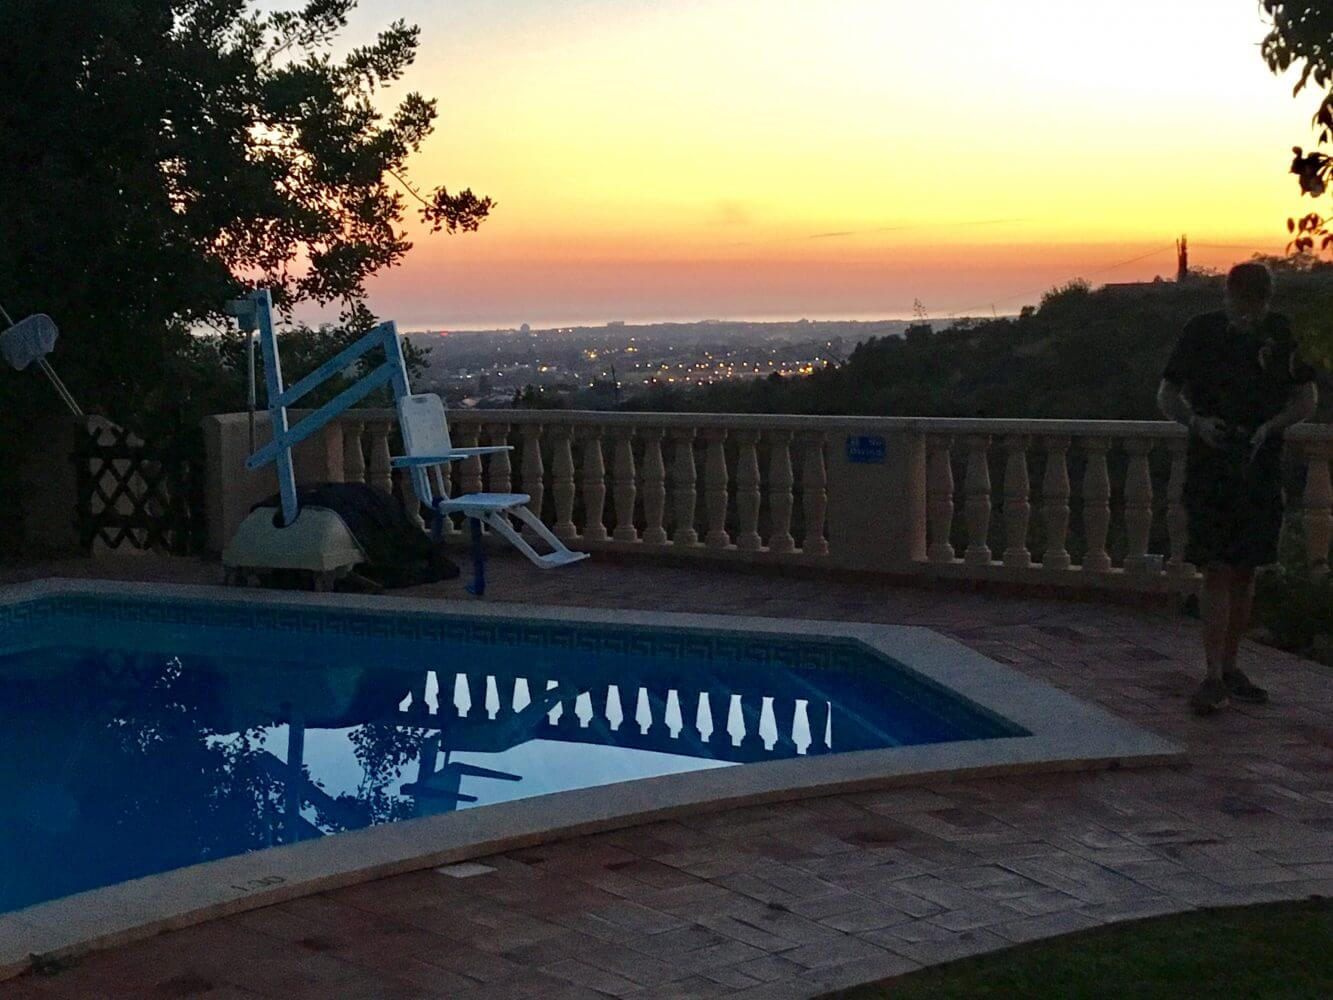 Pool lift for the disabled, accessible pool, accessible villa, with WAV holidays for the disabled, algarve portugal